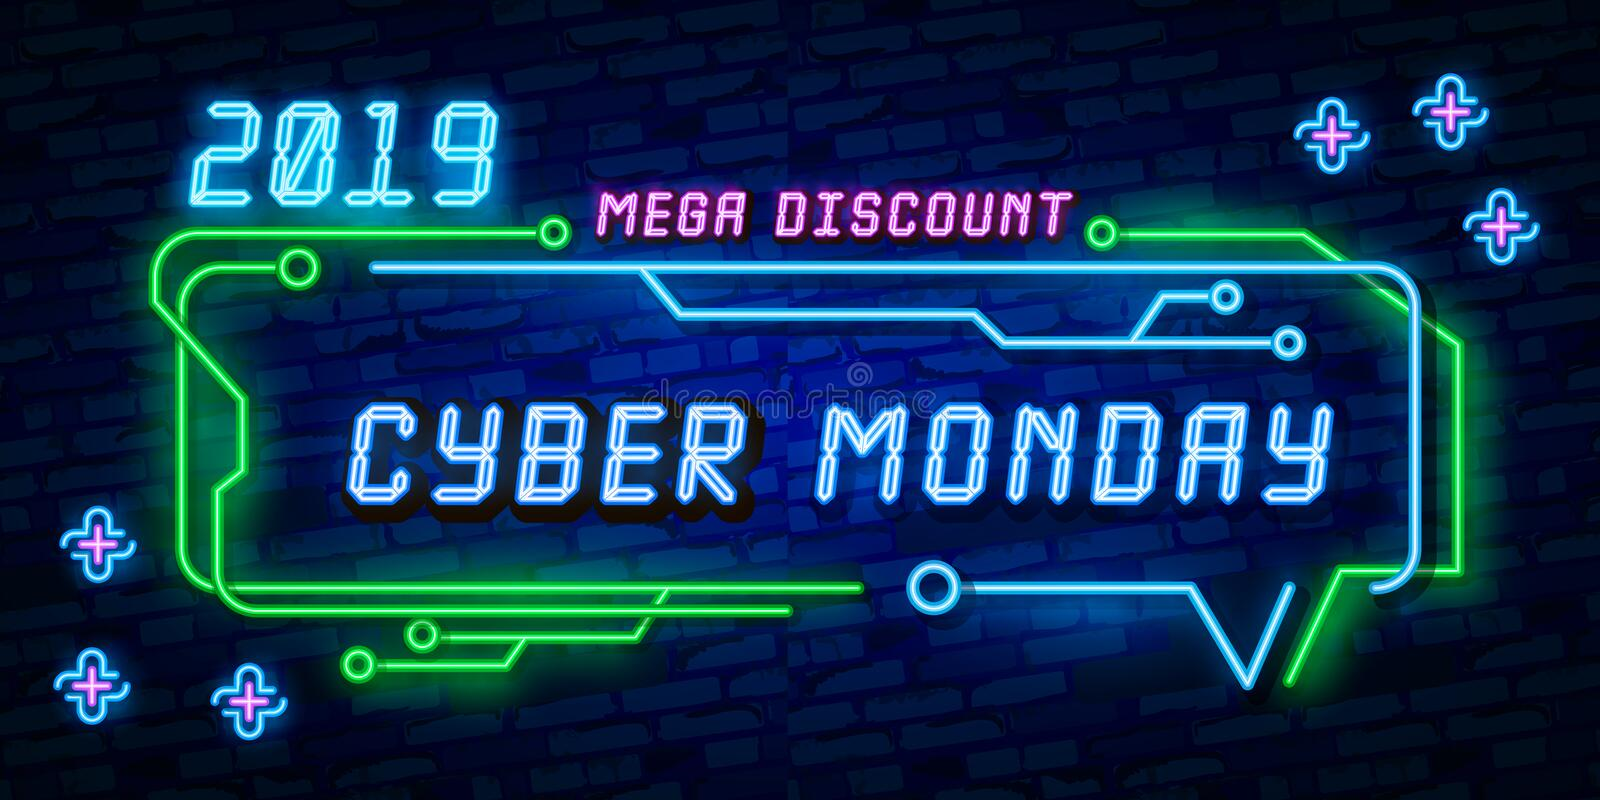 Big set Cyber Monday, Vector illustration discount sale concept in neon style, online shopping and marketing concept. Neon Light s royalty free illustration